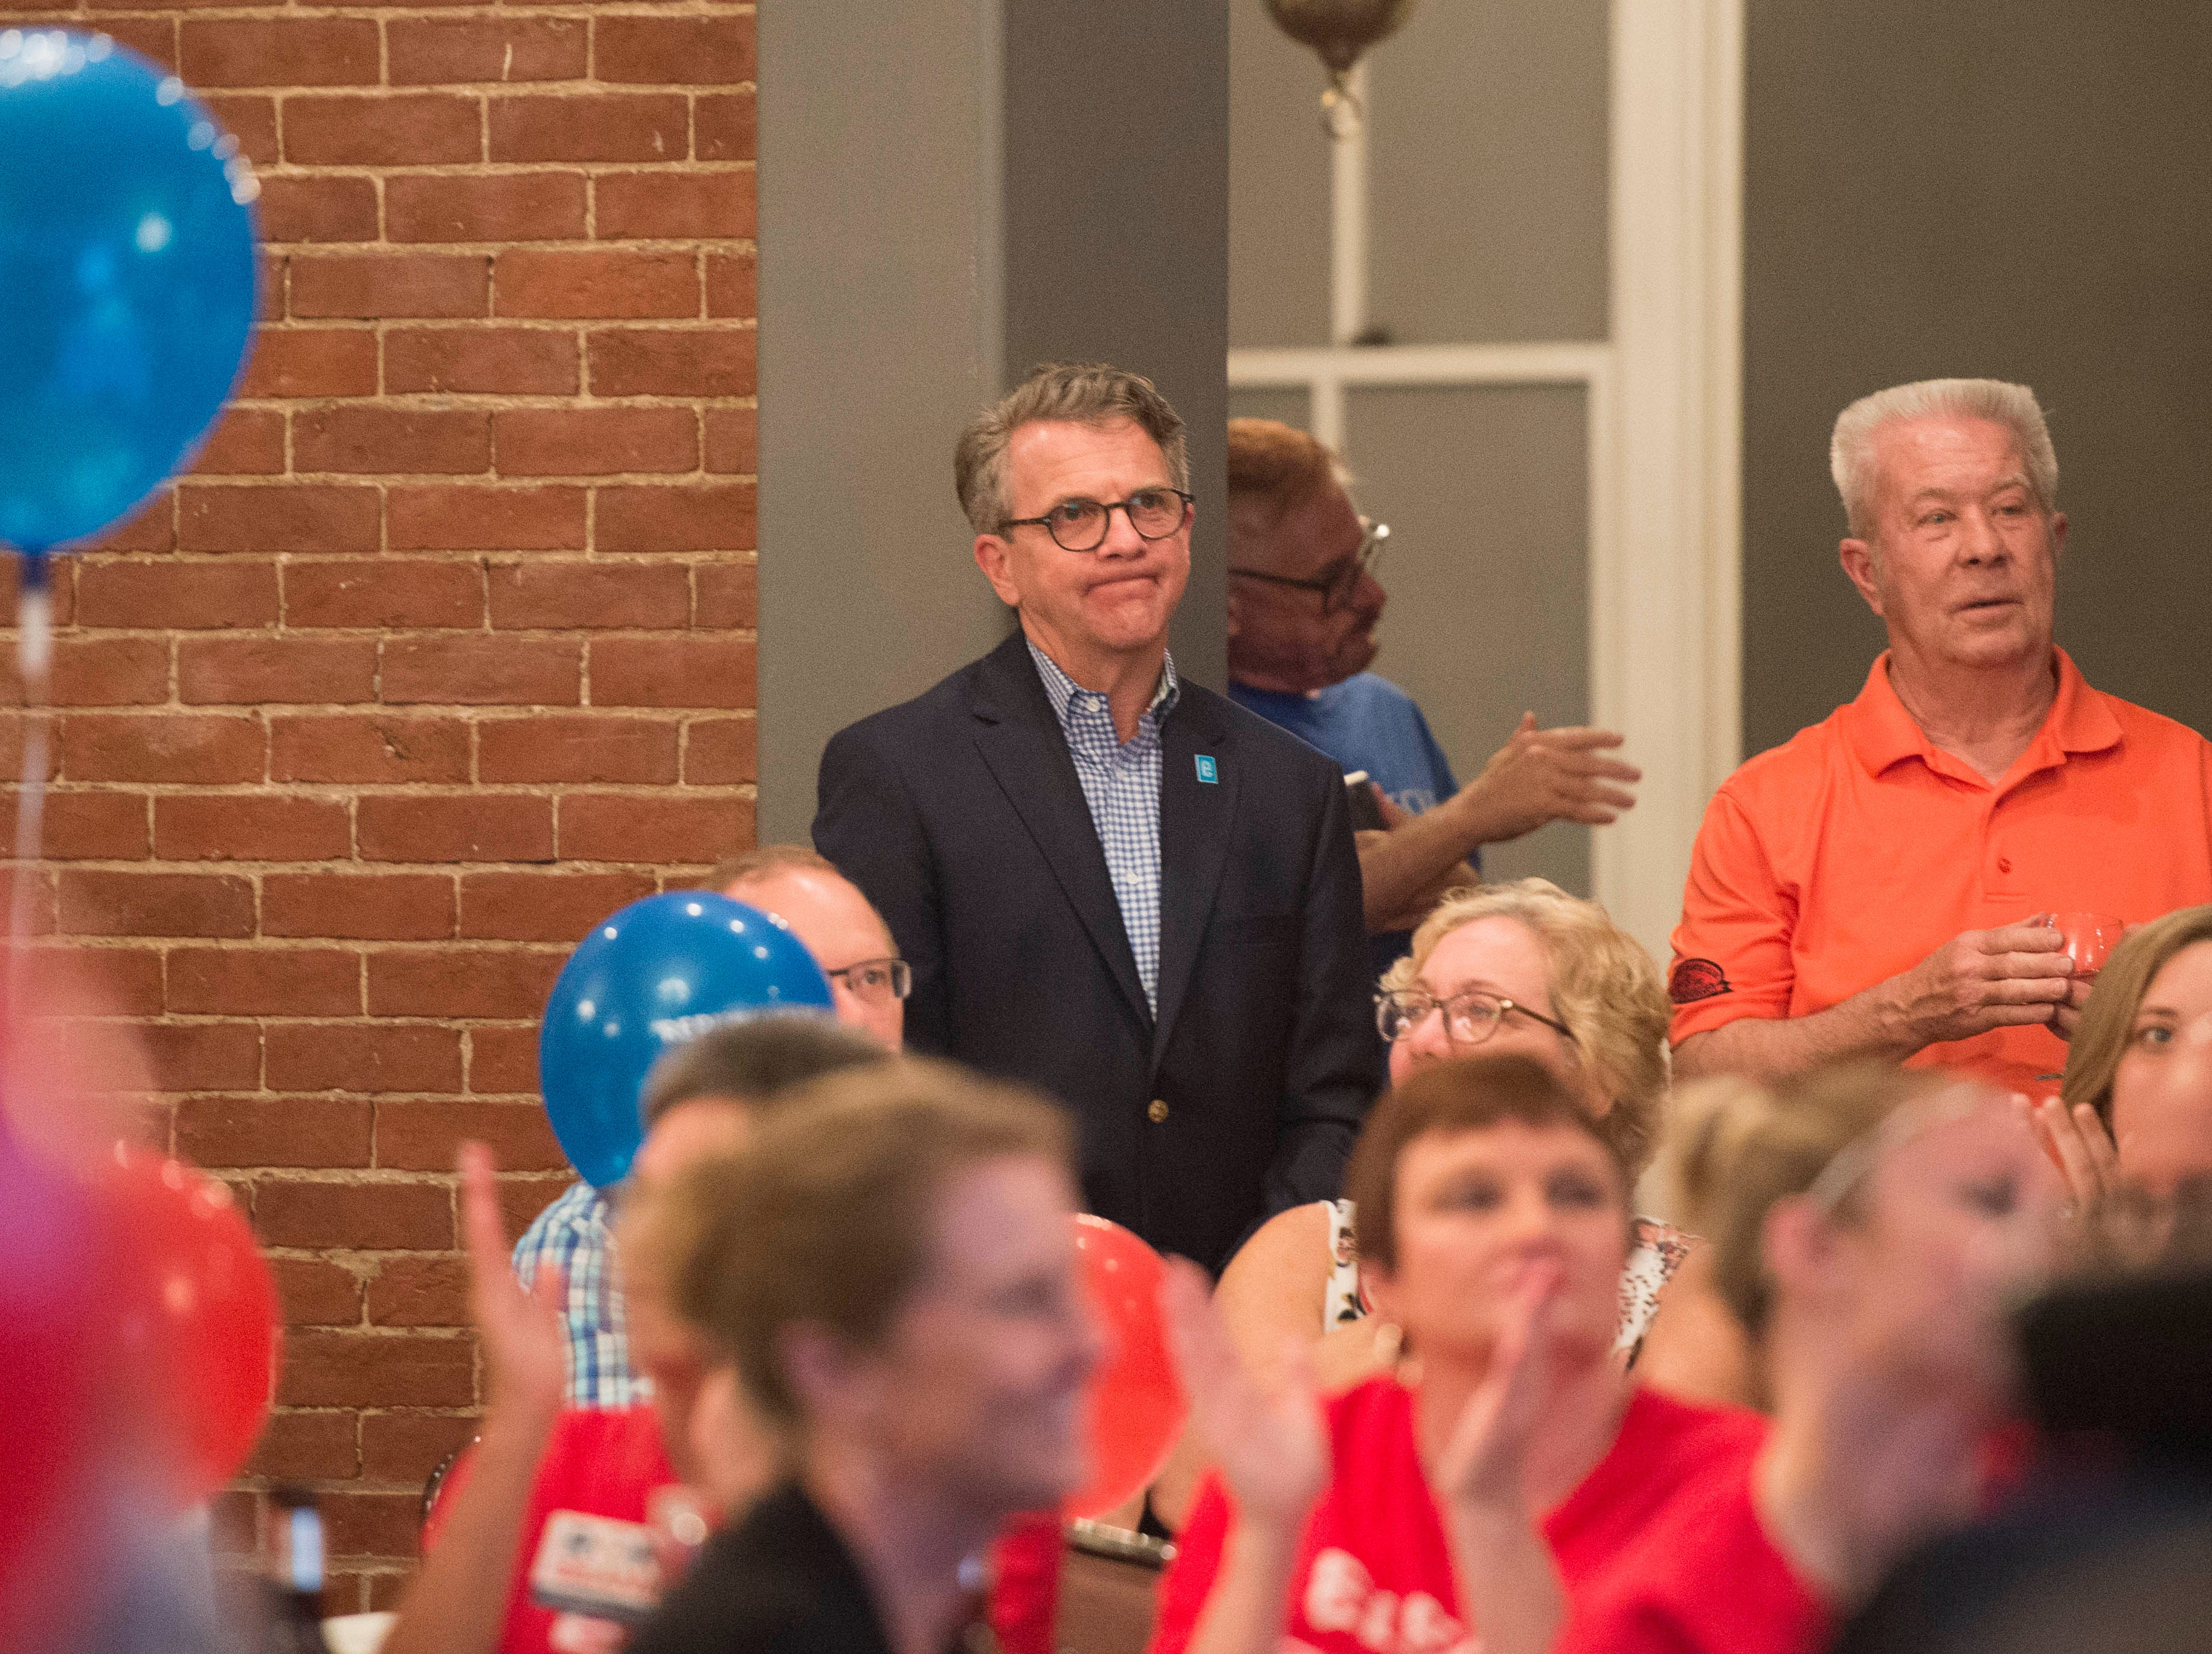 Evansville Mayor Lloyd Winnecke (R) reacts to pleasant remarks made by city council at-large candidate Zane Clodfelter (R) (not pictured) during before addressing the crowd after winning the primary election, Tuesday May 7, 2019.